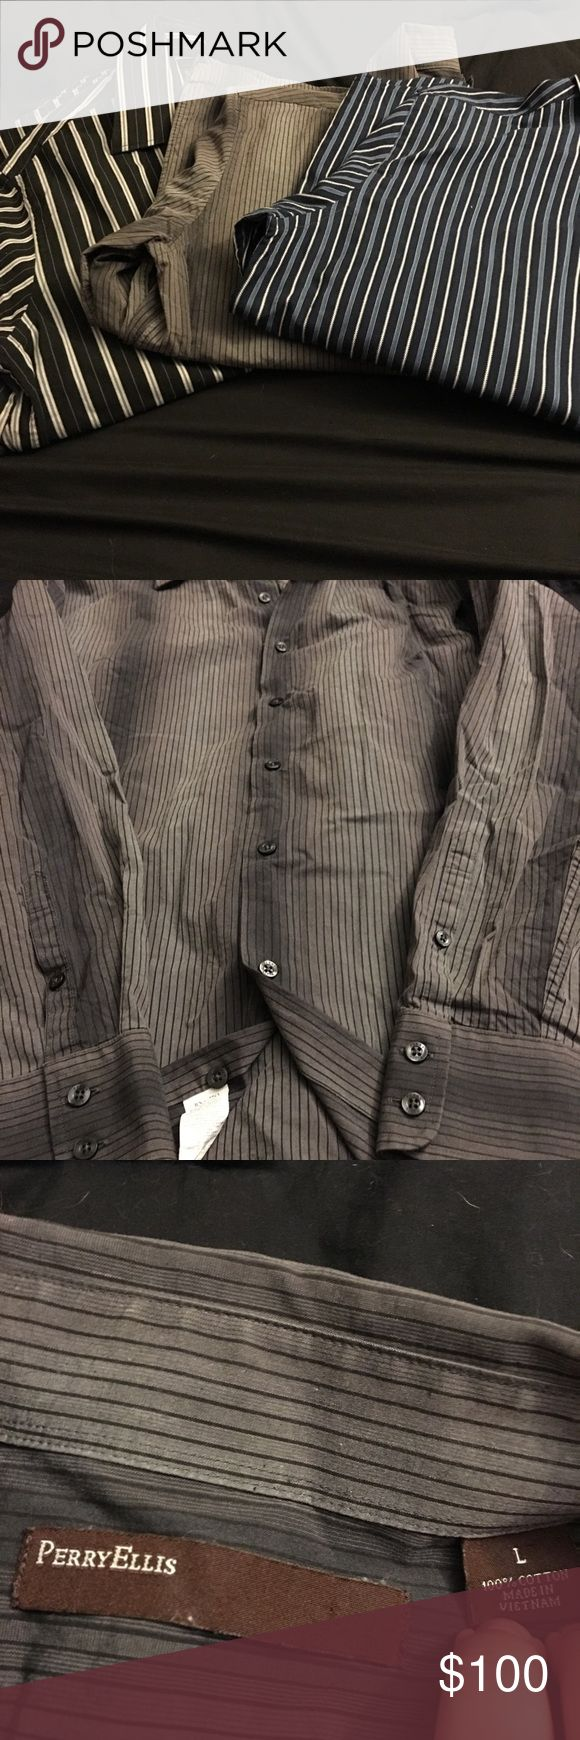 Set of 3 men's Perry Ellis dress shirts All size large. All have all buttons, all long sleeve, all are flawless, and all are 100% cotton. No pockets on any of these shirts. Dark blue with white and light blue vertical stripes, gray with black vertical stripes and black with white and gray vertical stripes. Very nice shirts. Originally $70 each. All worn strictly for interviews by my SO. They no longer fit him. Perry Ellis Shirts Dress Shirts